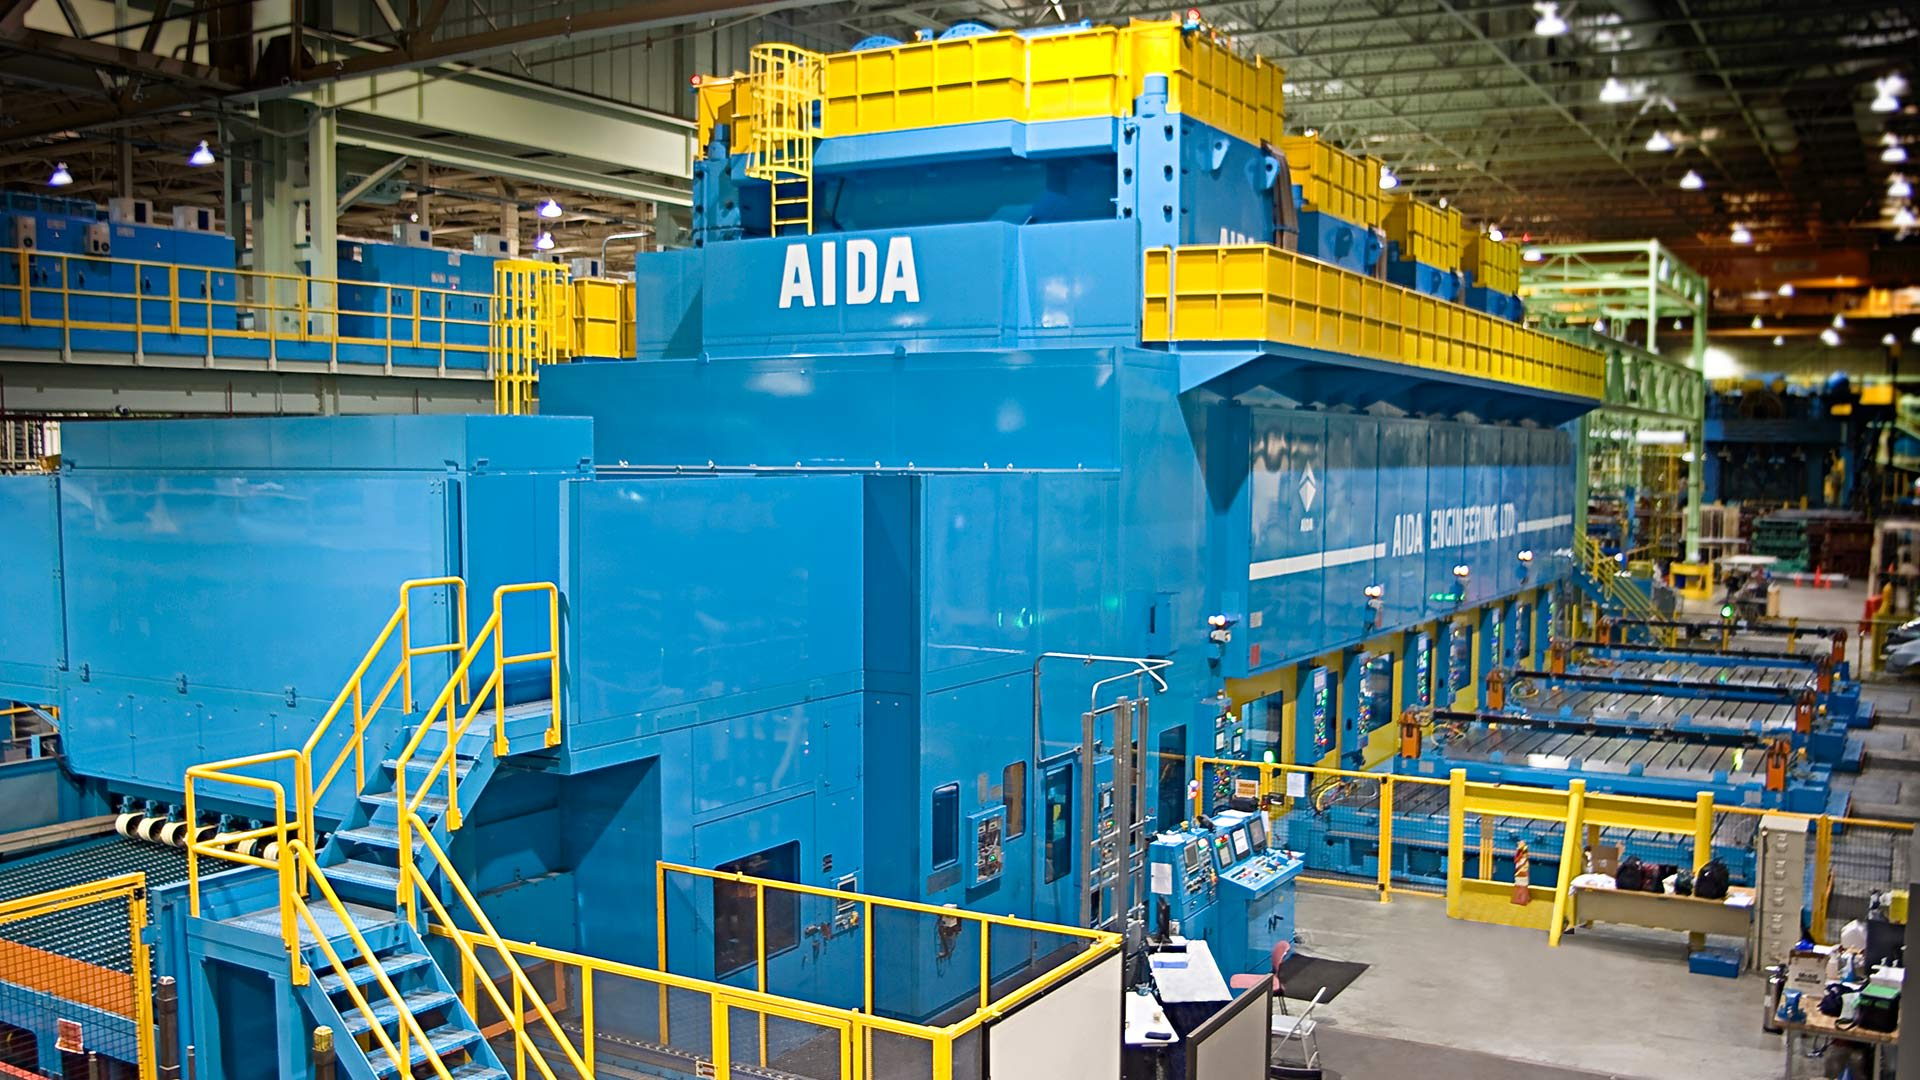 AIDA Servo Presses | Direct Drive Servo Press Technology